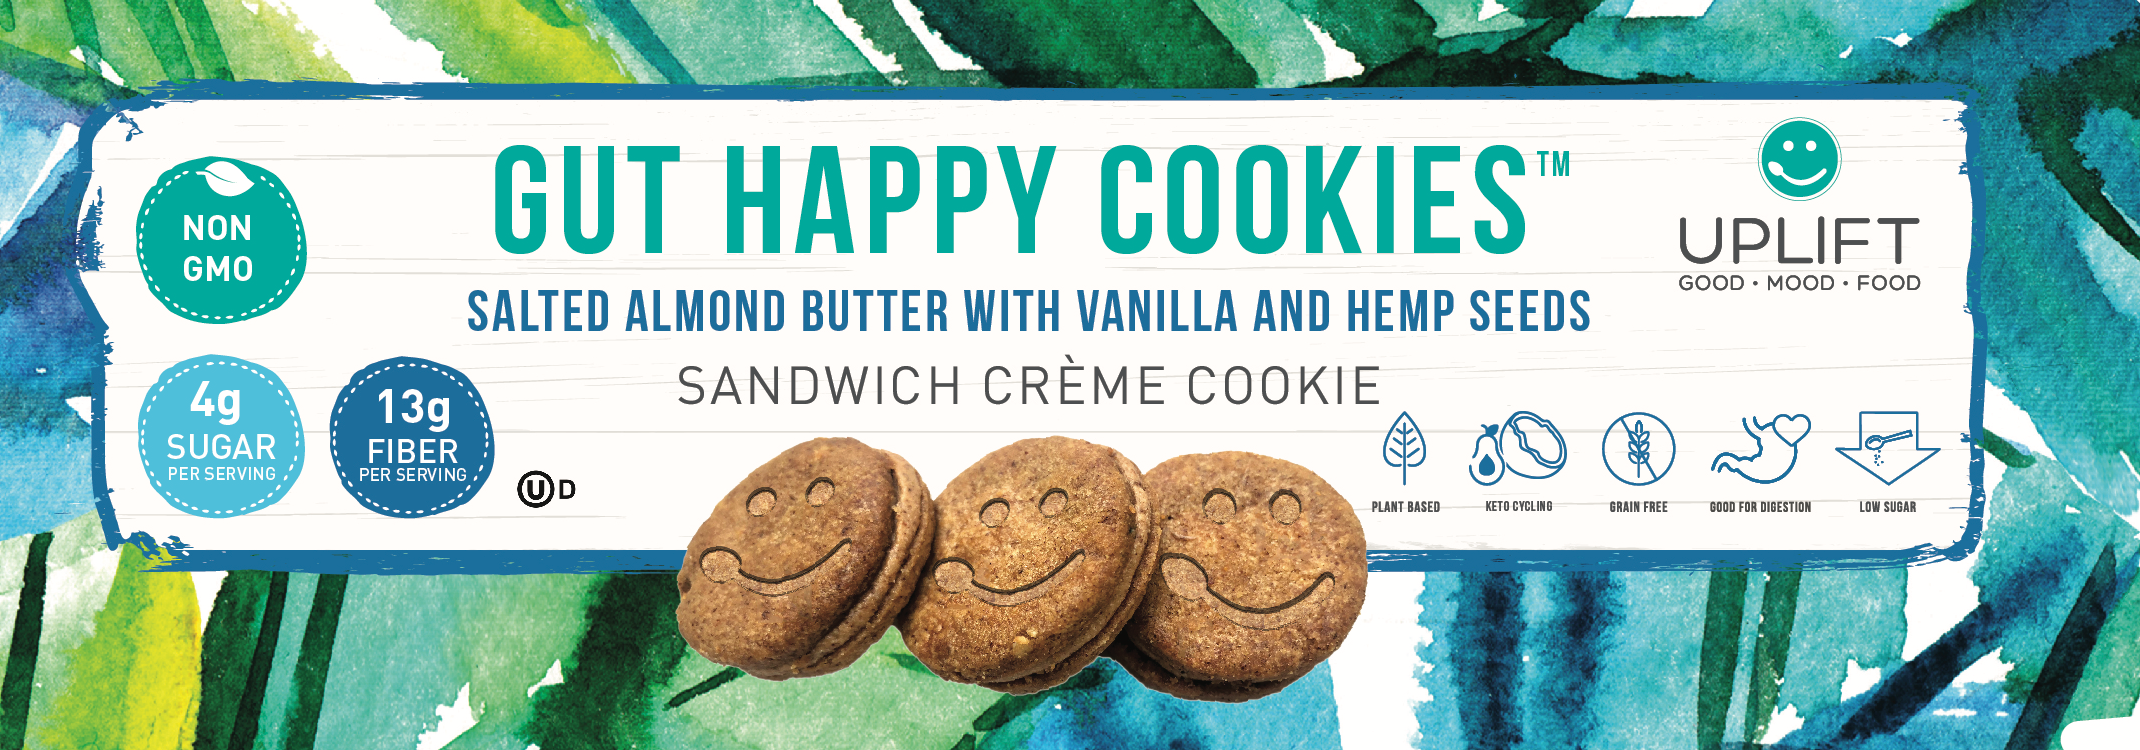 uplift food gut happy cookies high fiber prebiotic fiber vegan keto cookie breakfast biscuit